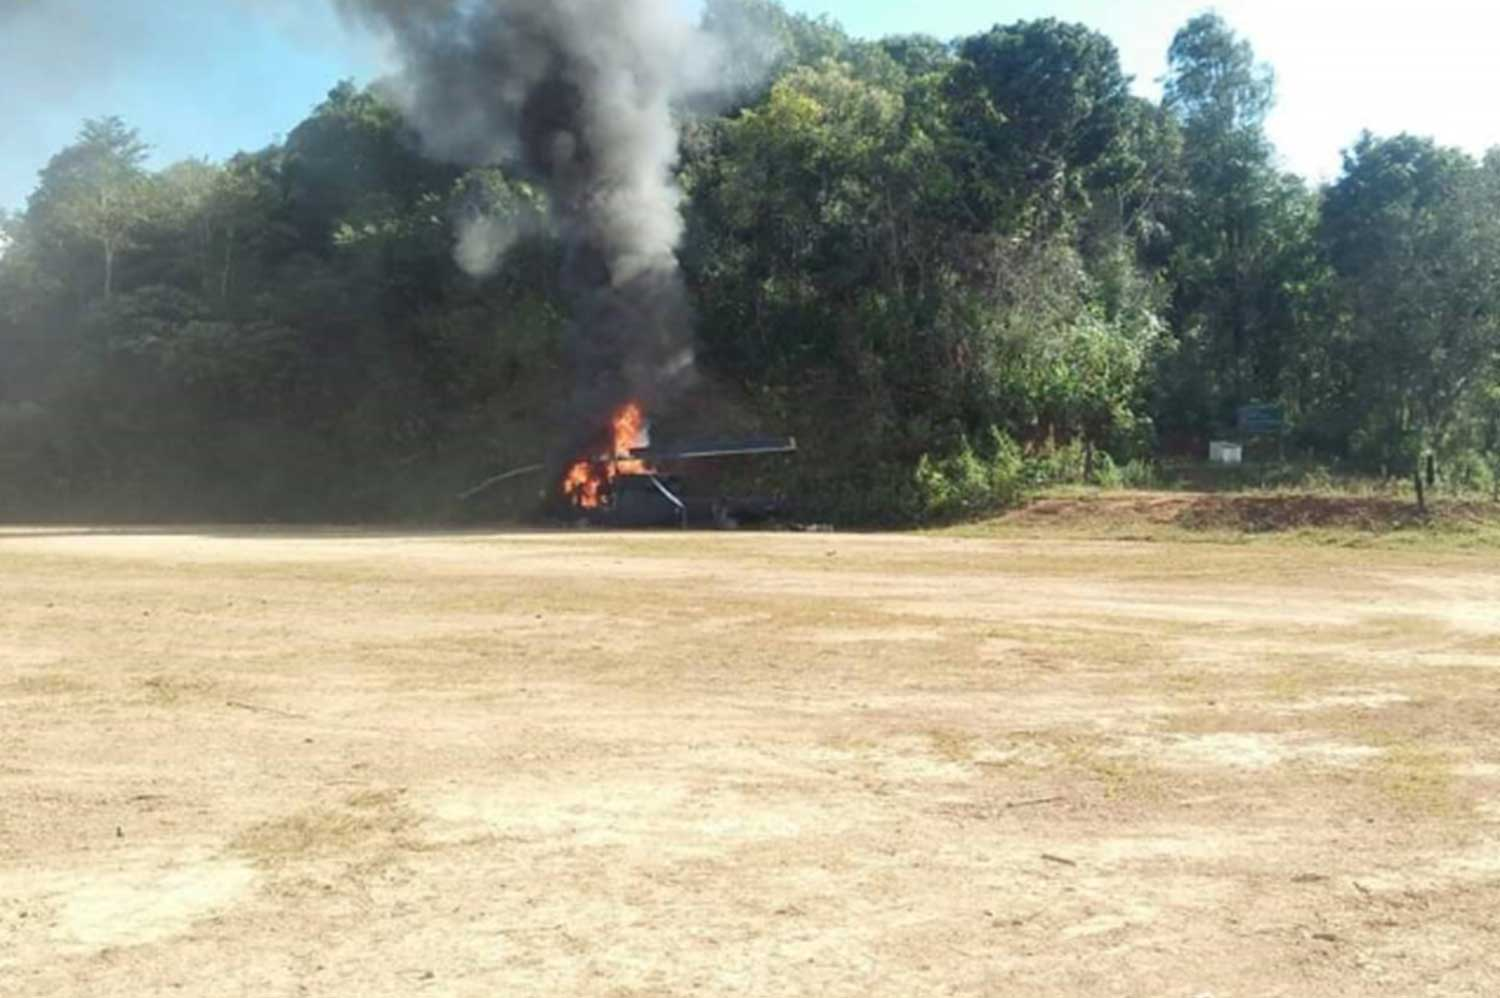 Smoke pours from the burning helicopter after it made an emergency landing in a school field in Mae Chaem district, Chiang Mai province, after developing engine trouble on Tuesday afternoon. The 11 people on board, including Chiang Mai deputy governor Samroeng Chaisen, escaped unhurt. (Photo: Phamumet Tanraksa)